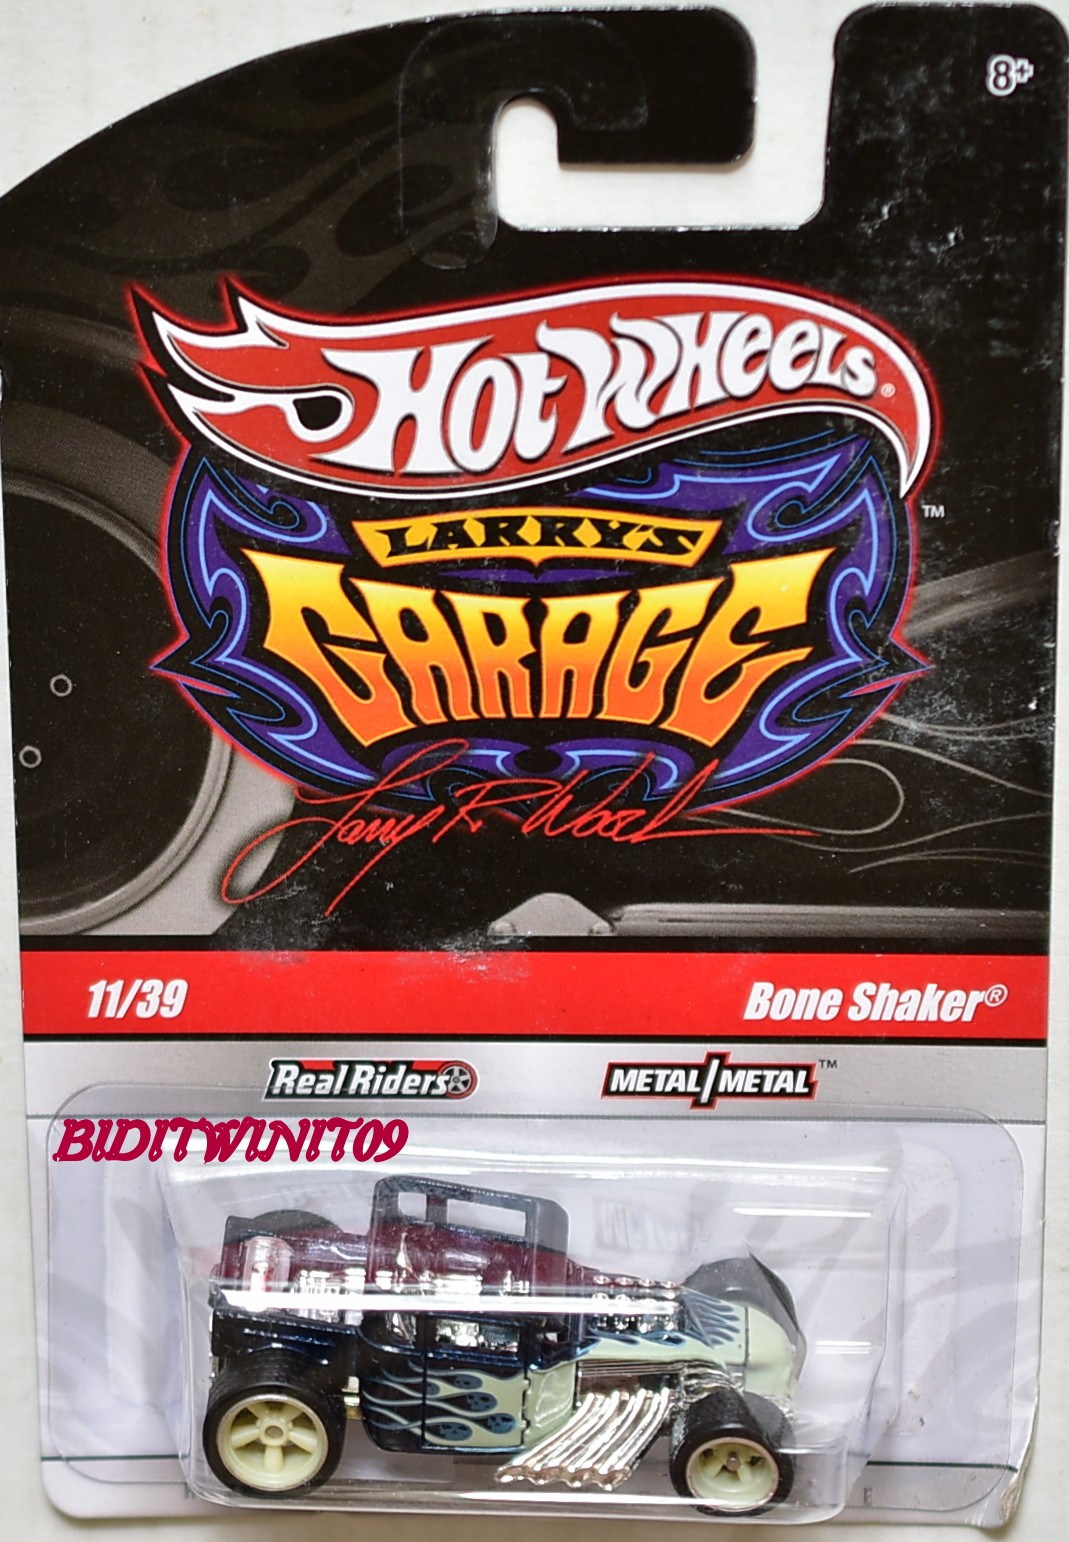 HOT WHEELS LARRY'S GARAGE #11/39 BONE SHAKER